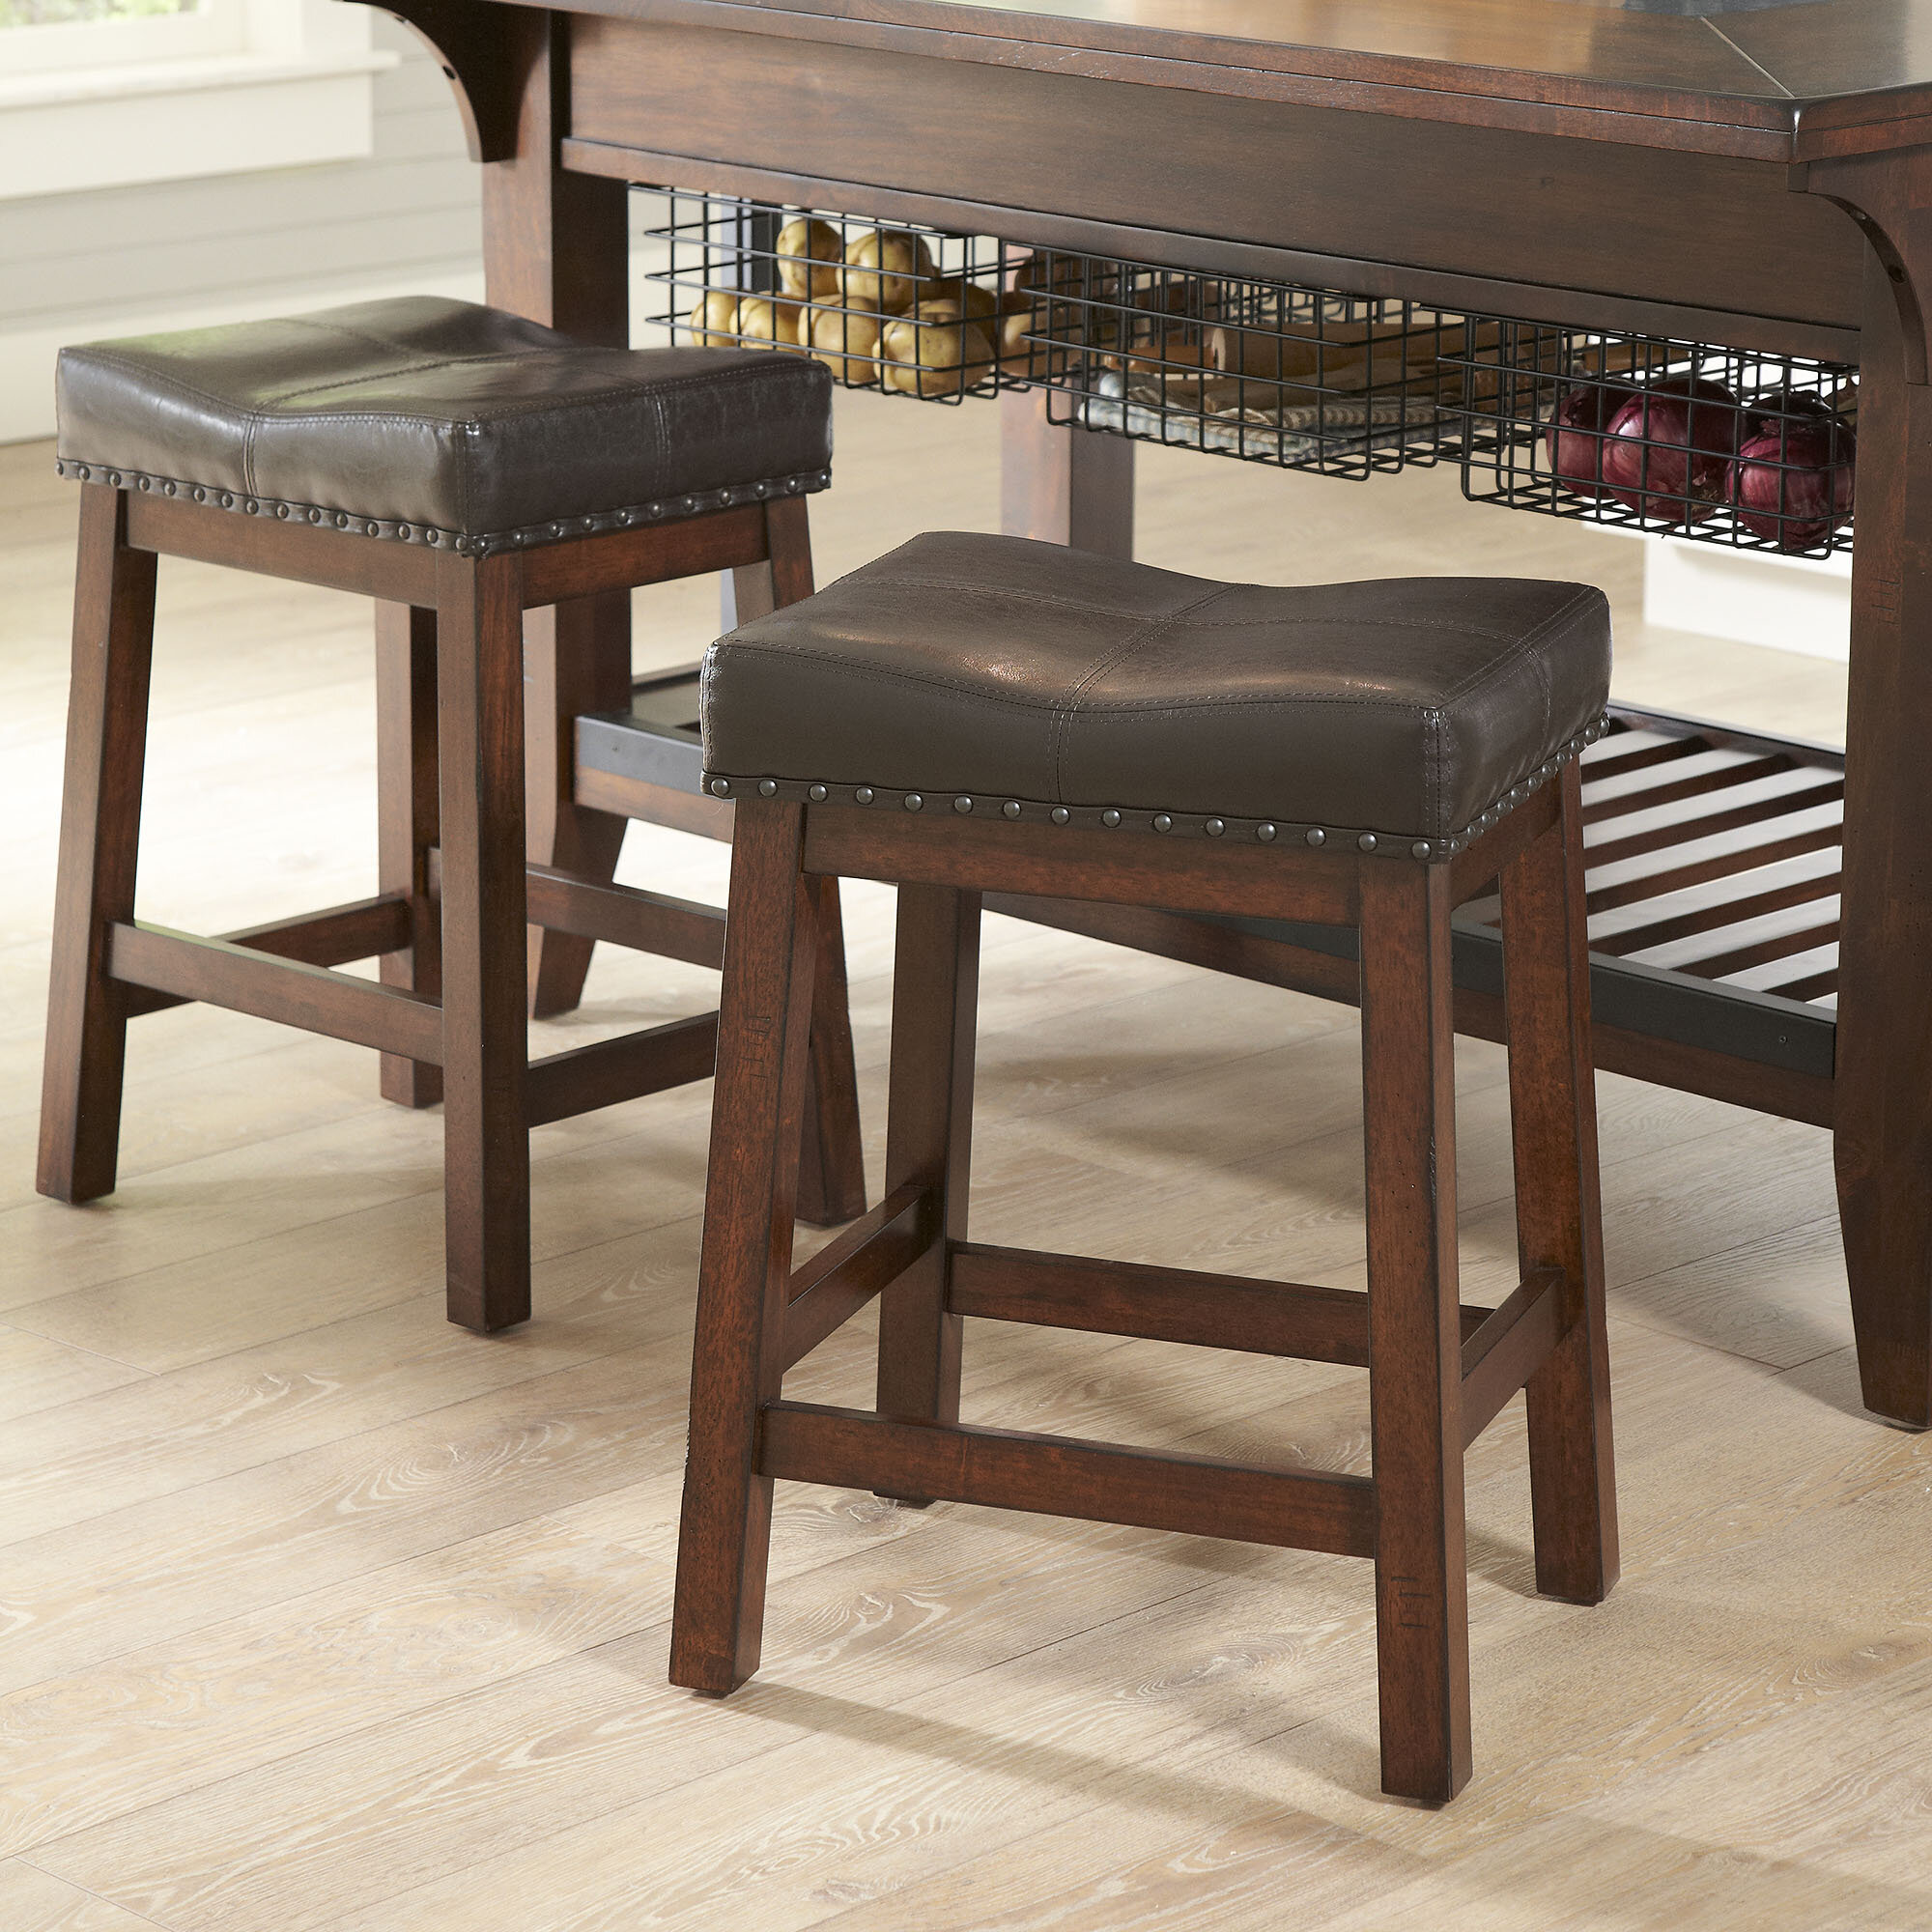 rectangle stools stool s img carpenters product carpenter the copy anyroom bar